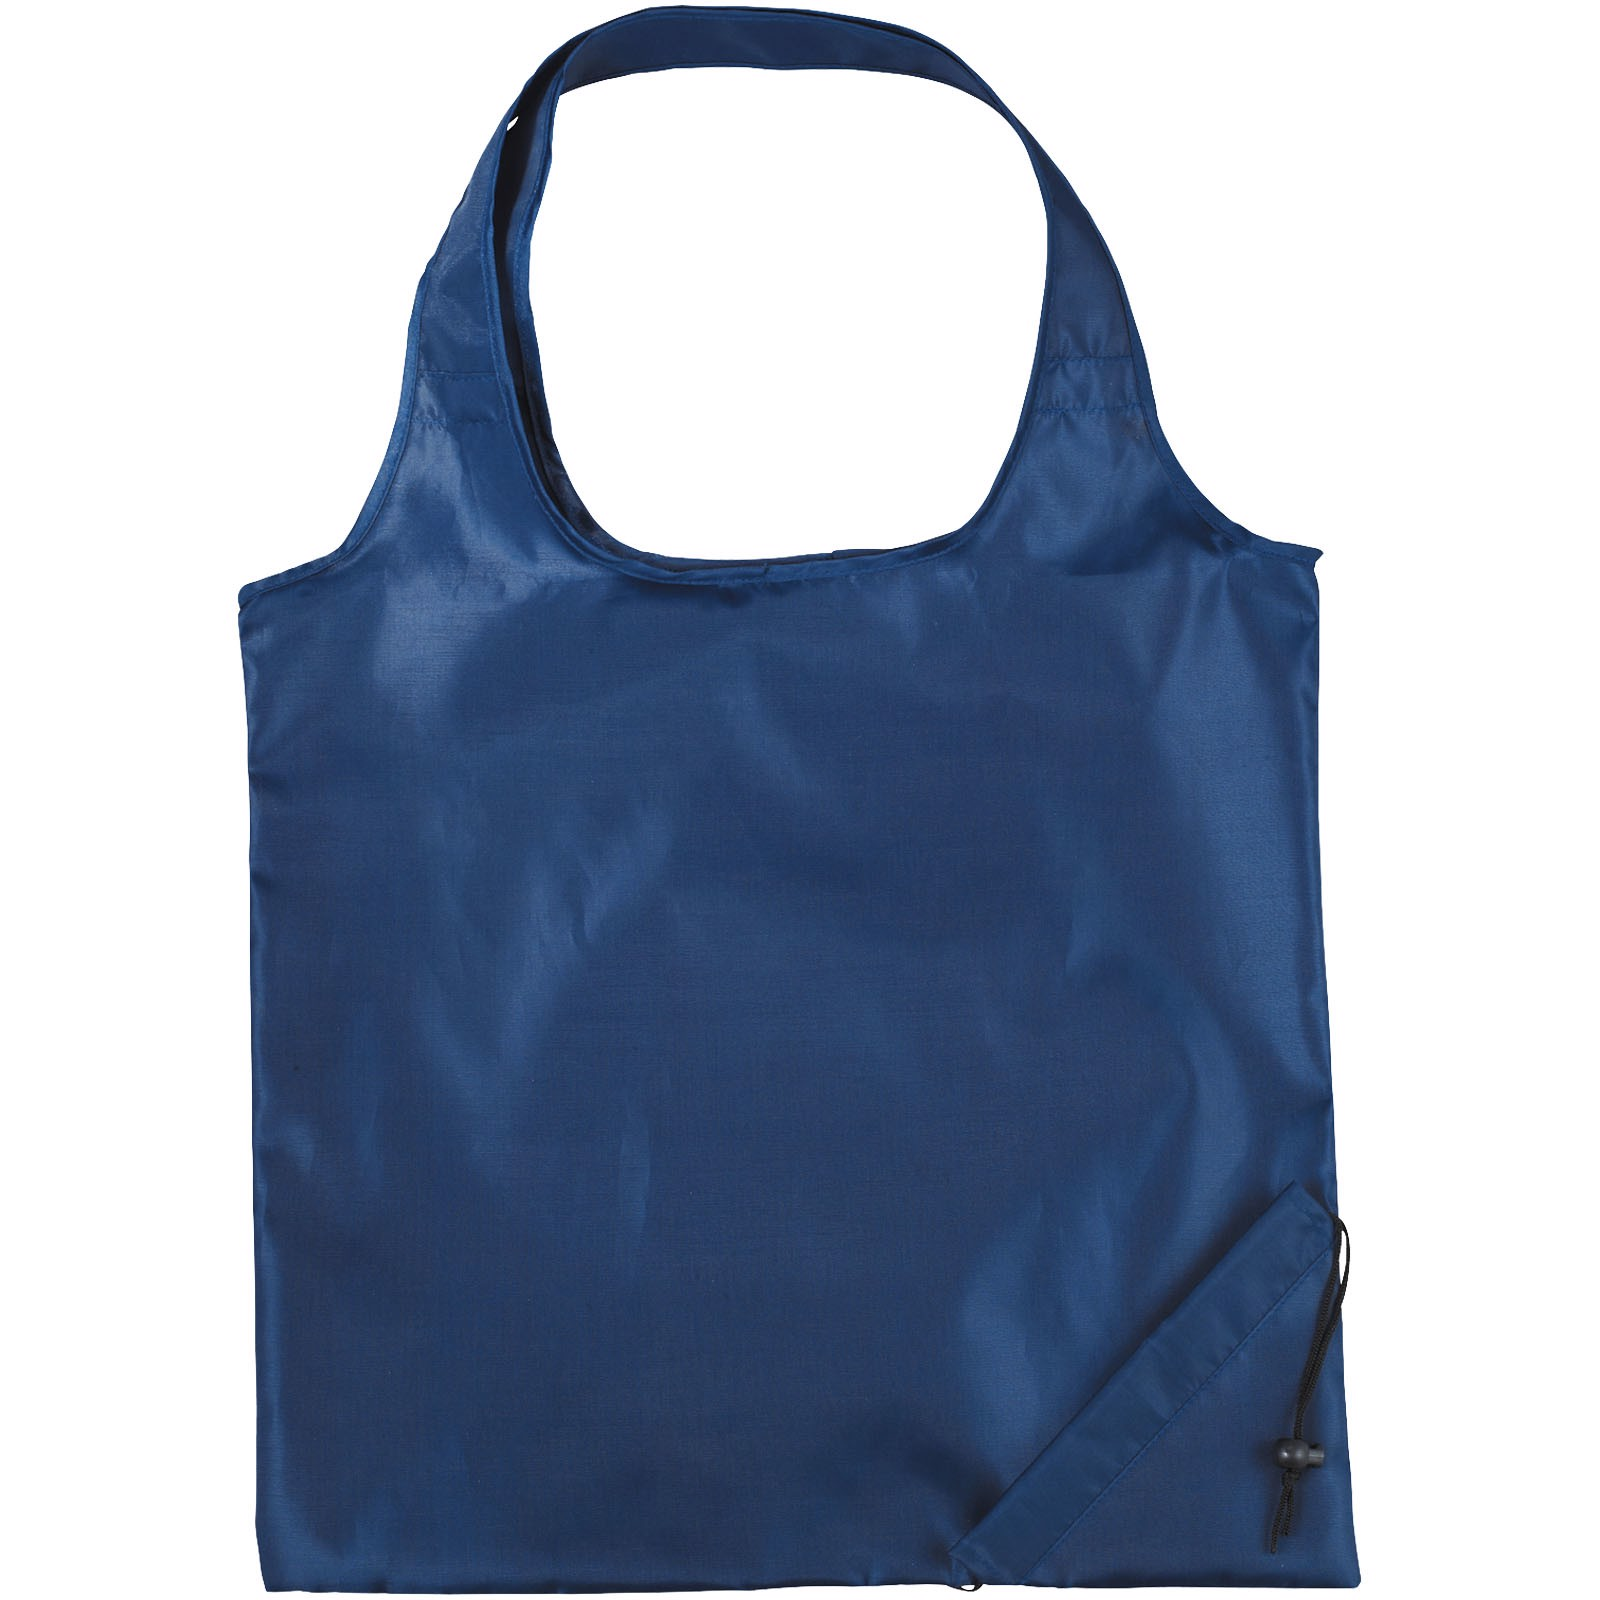 Bungalow foldable tote bag - Navy